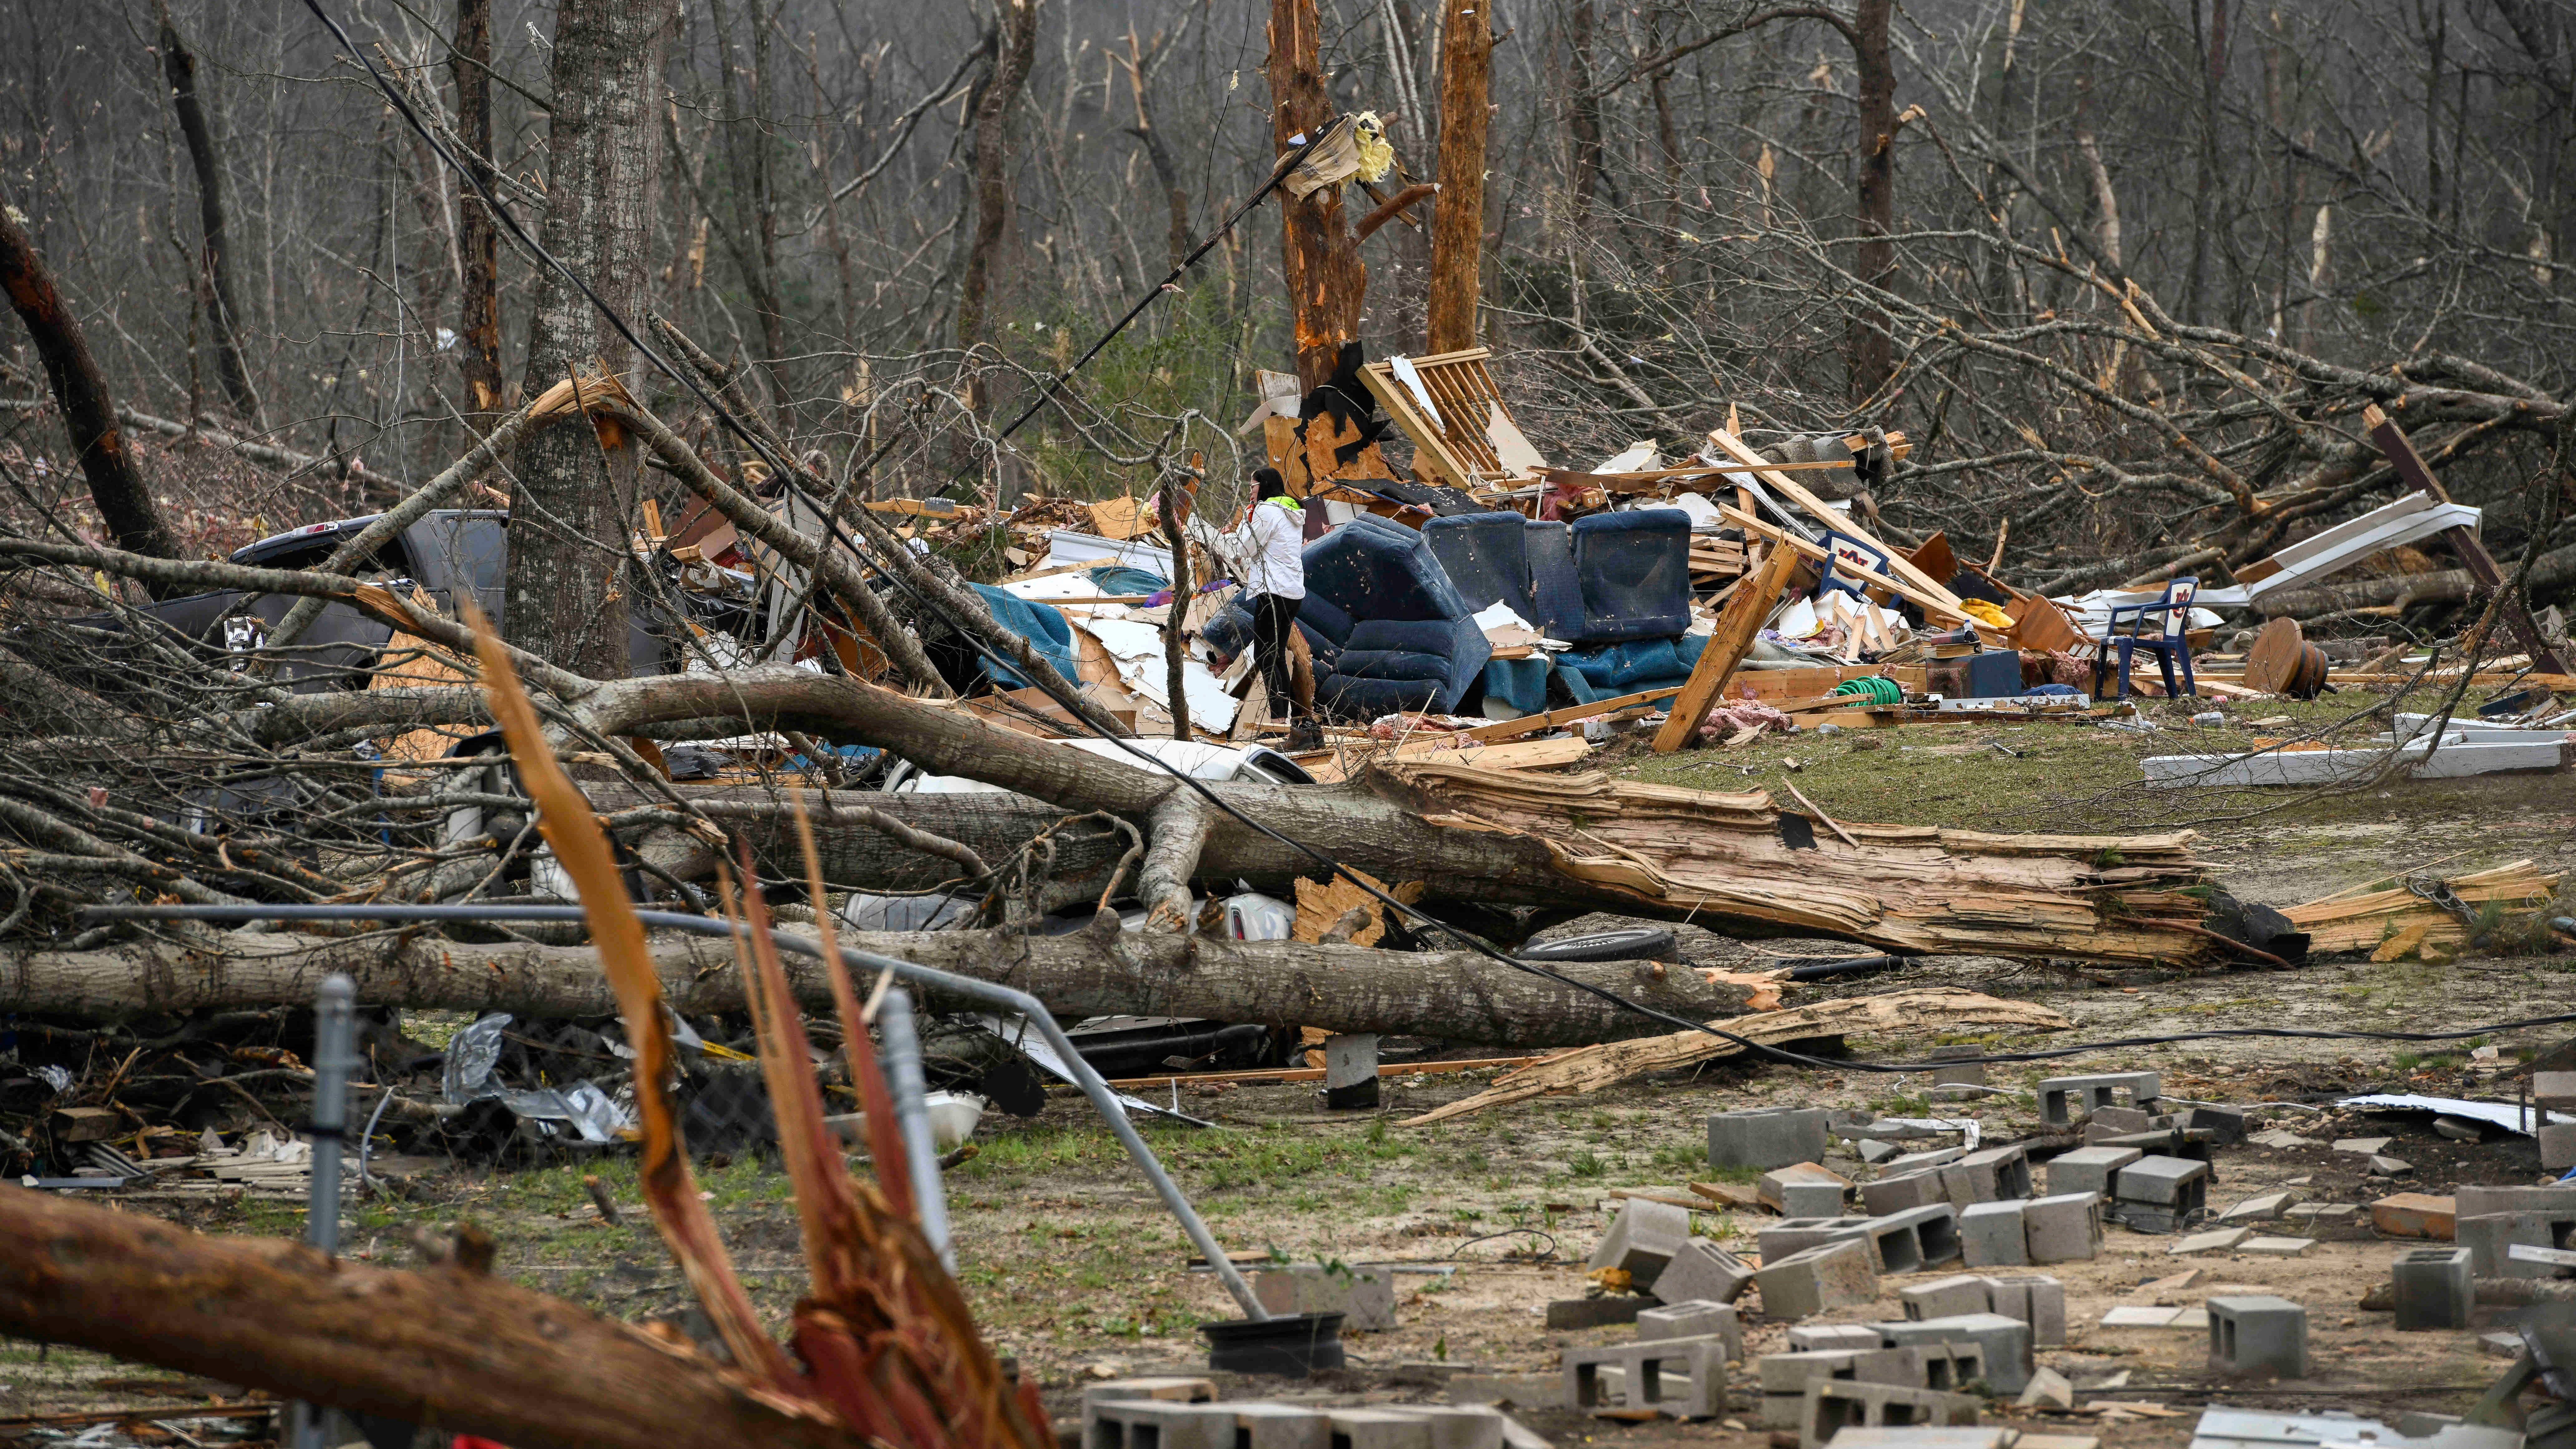 Brittney Downs looks by a waste of a family member's shop-worn home a day after a lethal whirly scorched a area, in Beauregard, Ala., Monday, Mar 4, 2019. (AP Photo/Julie Bennett)